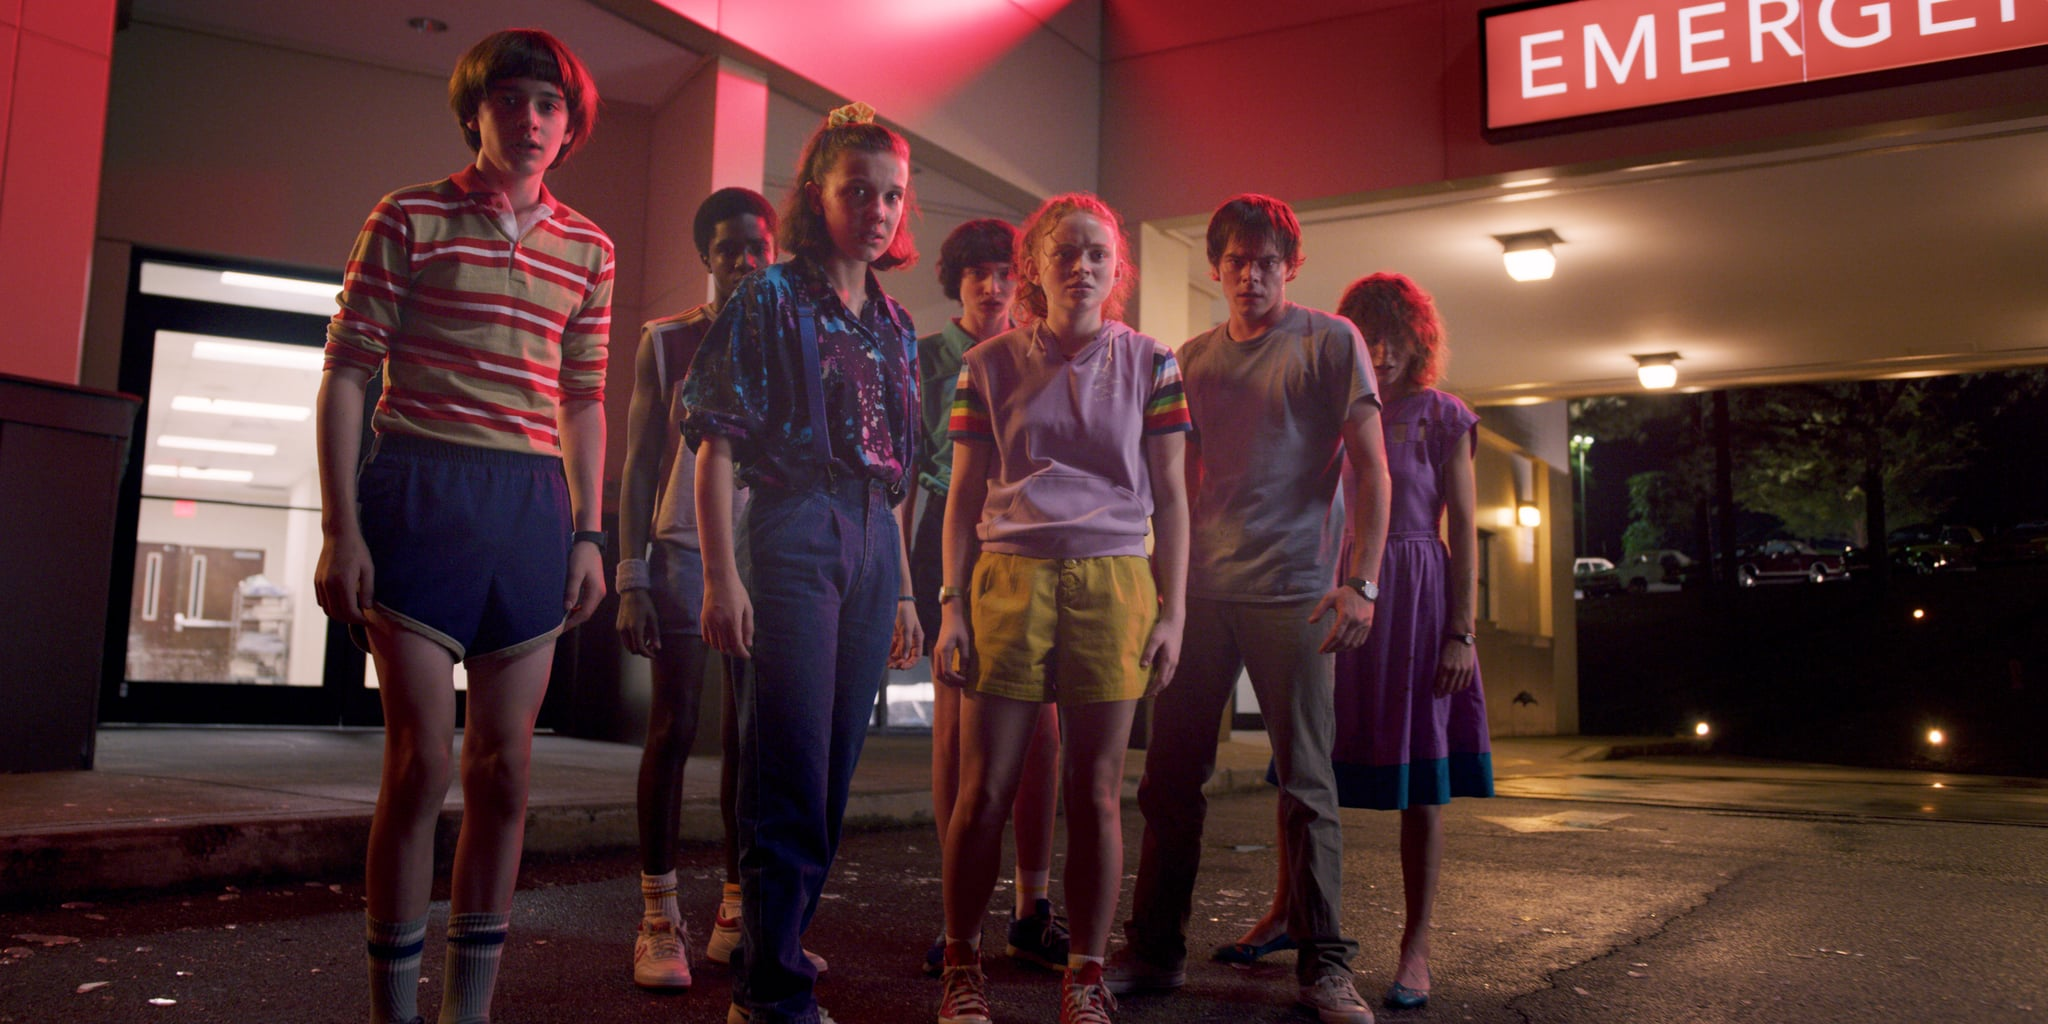 STRANGER THINGS, from left: Noah Schnapp, Caleb McLaughlin, Millie Bobby Brown, Finn Wolfhard, Sadie Sink, Charlie Heaton, Natalie Dyer, (Season 3, aired July 4, 2019), ph: Netflix / Courtesy Everett Collection